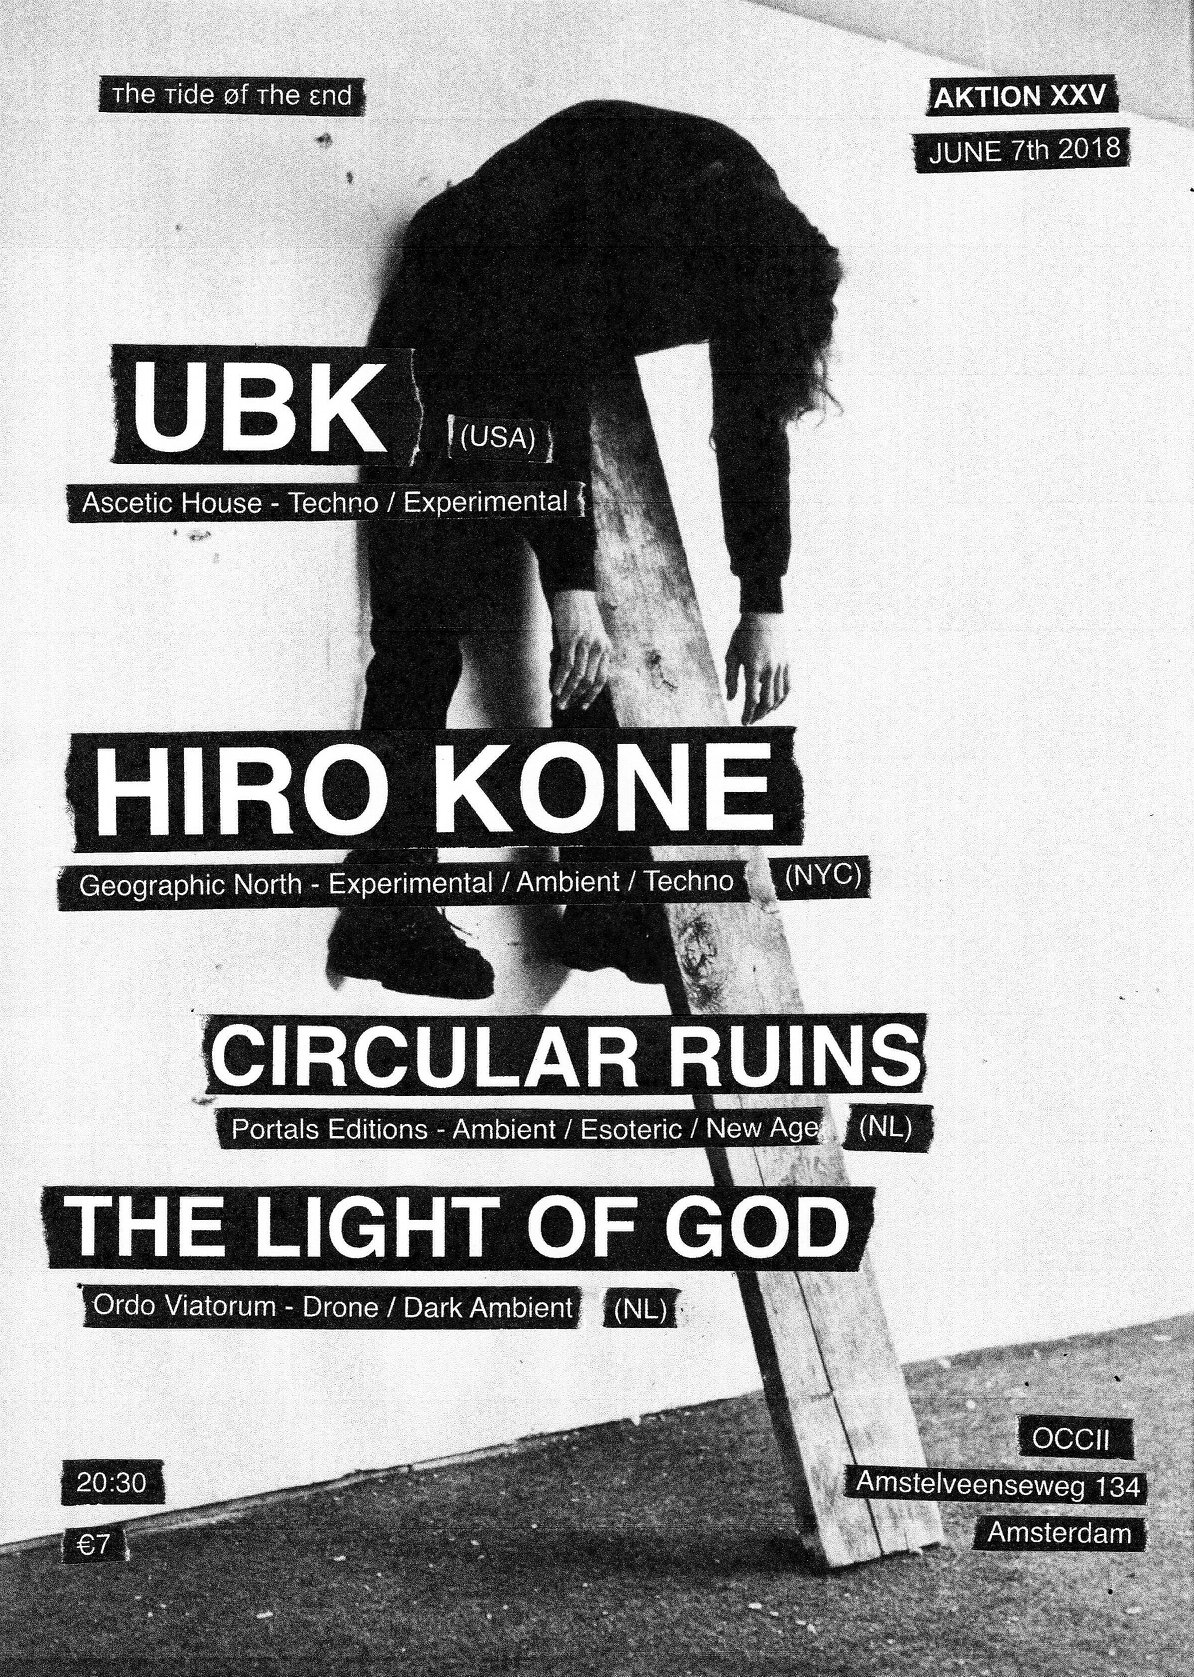 Aktion XXV [ттøтε] : HIRO KONE (US) + UBK (US) + CIRCULAR RUINS + THE LIGHT OF GOD